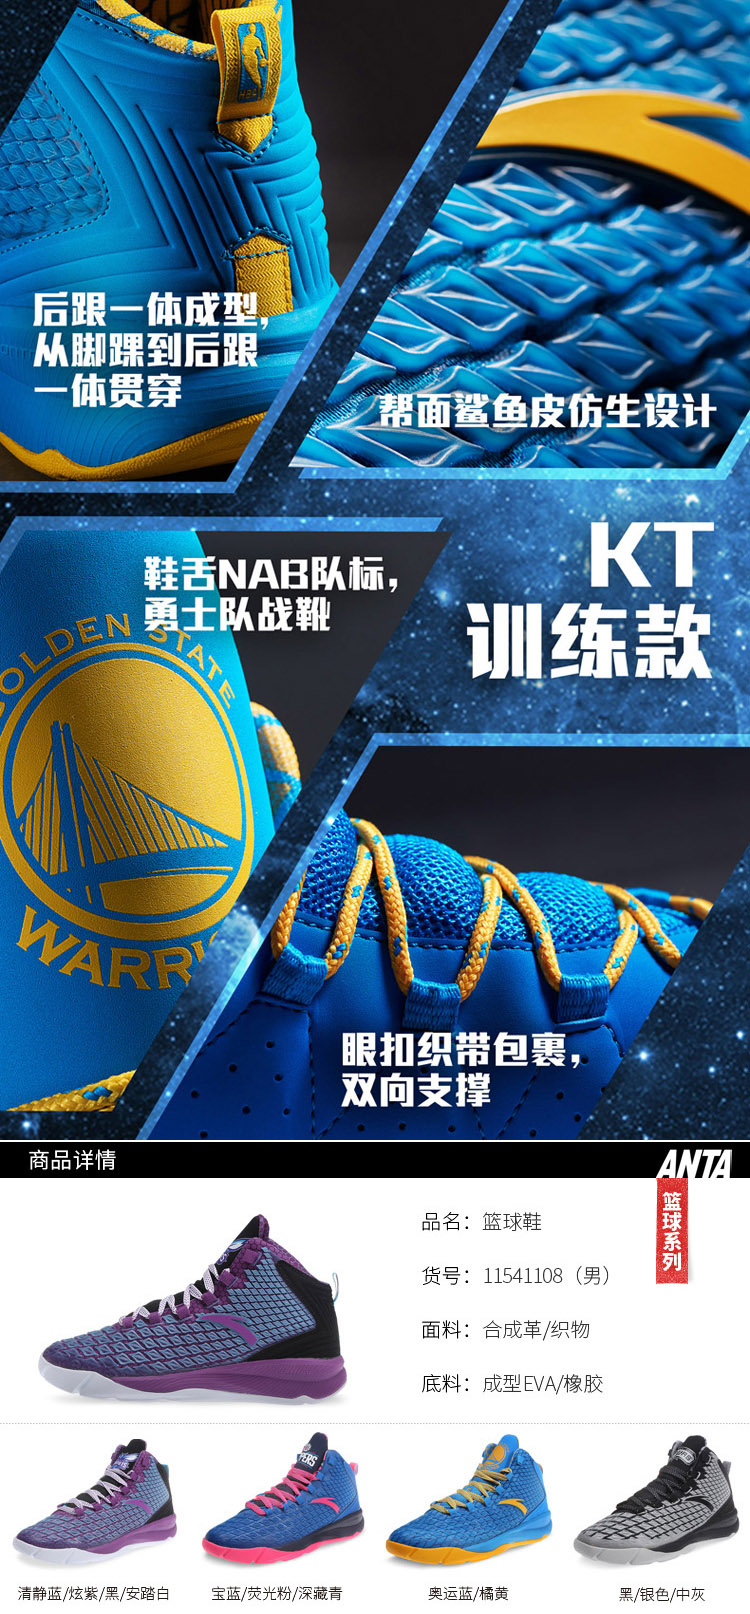 Anta Klay Thompson KT Fire NBA Basketball Shoes - Charlotte Hornets